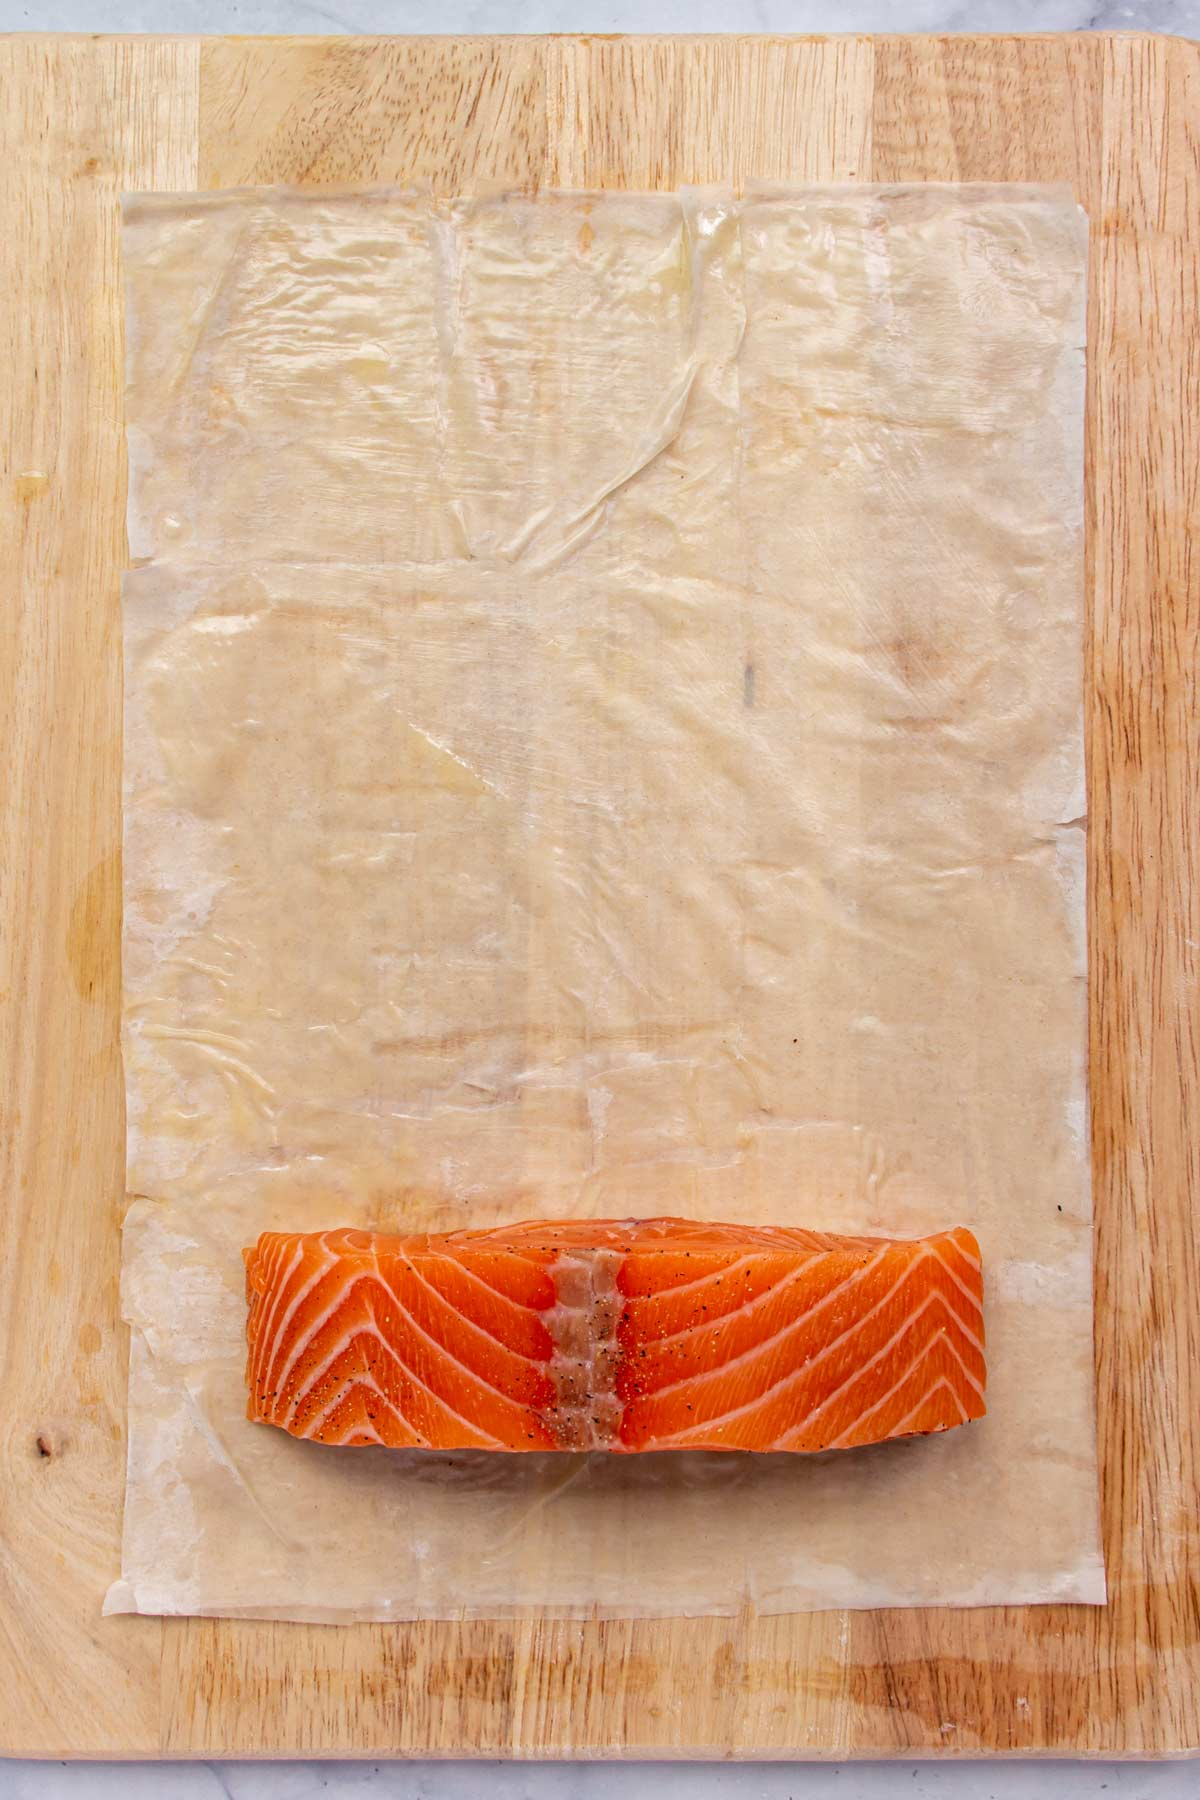 A salmon fillet on one end of a sheet of phyllo dough on a wooden board.